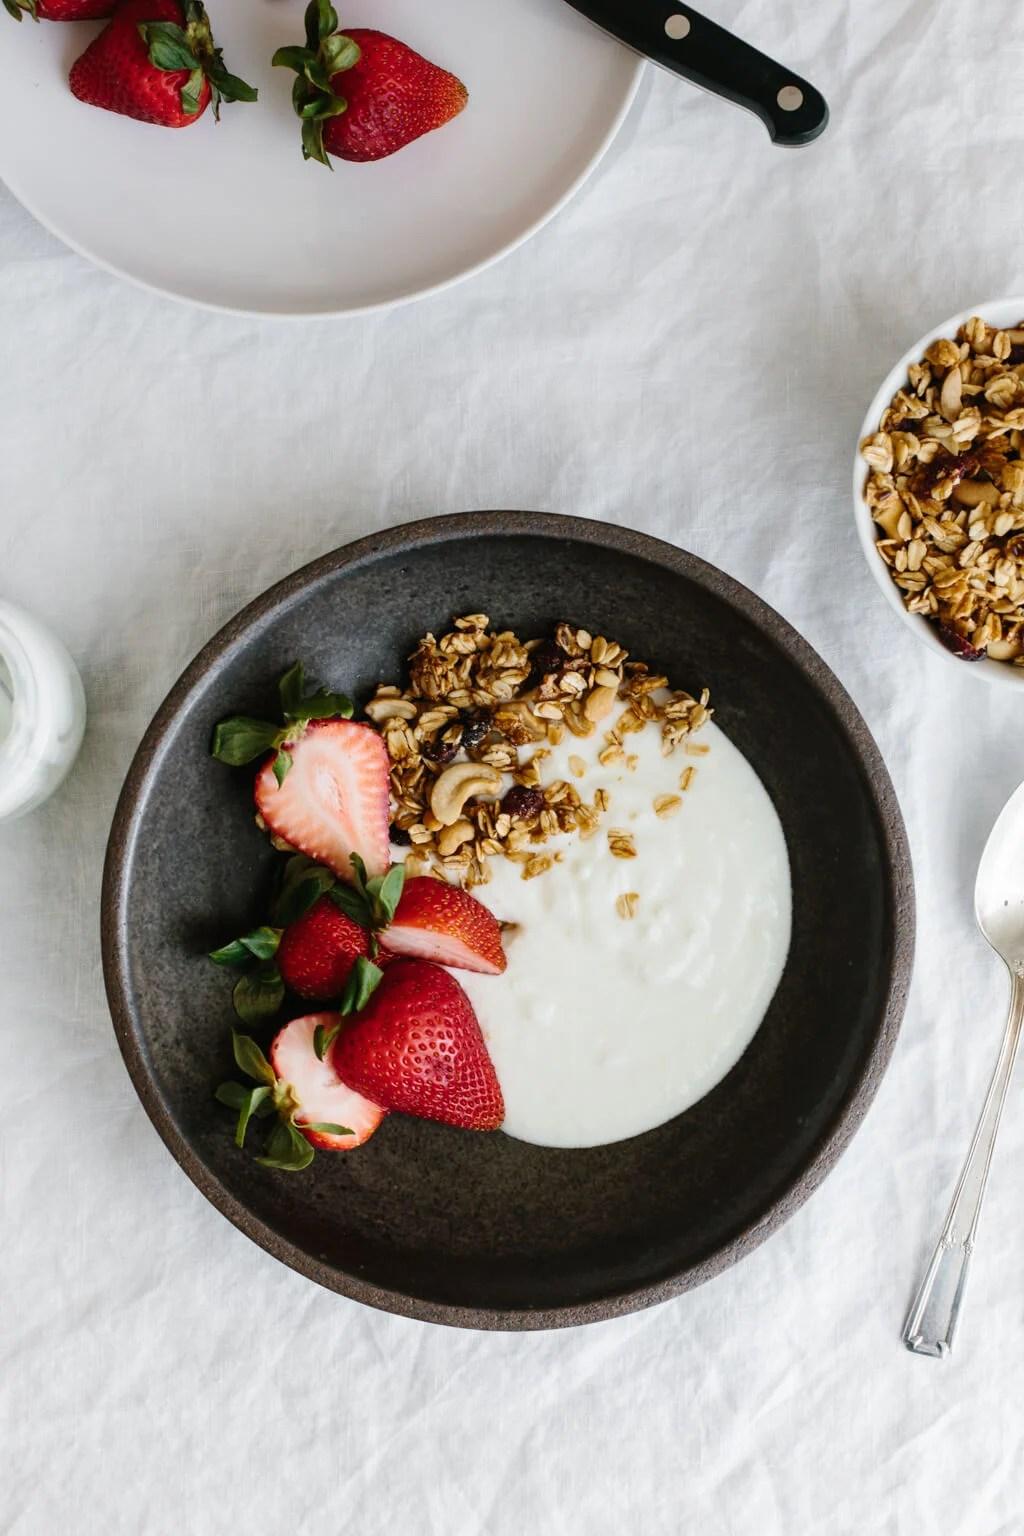 Homemade yogurt is easy to make and I'll walk you through the process step-by-step (with a video). This is a fail-safe way to make yogurt at home - promise!